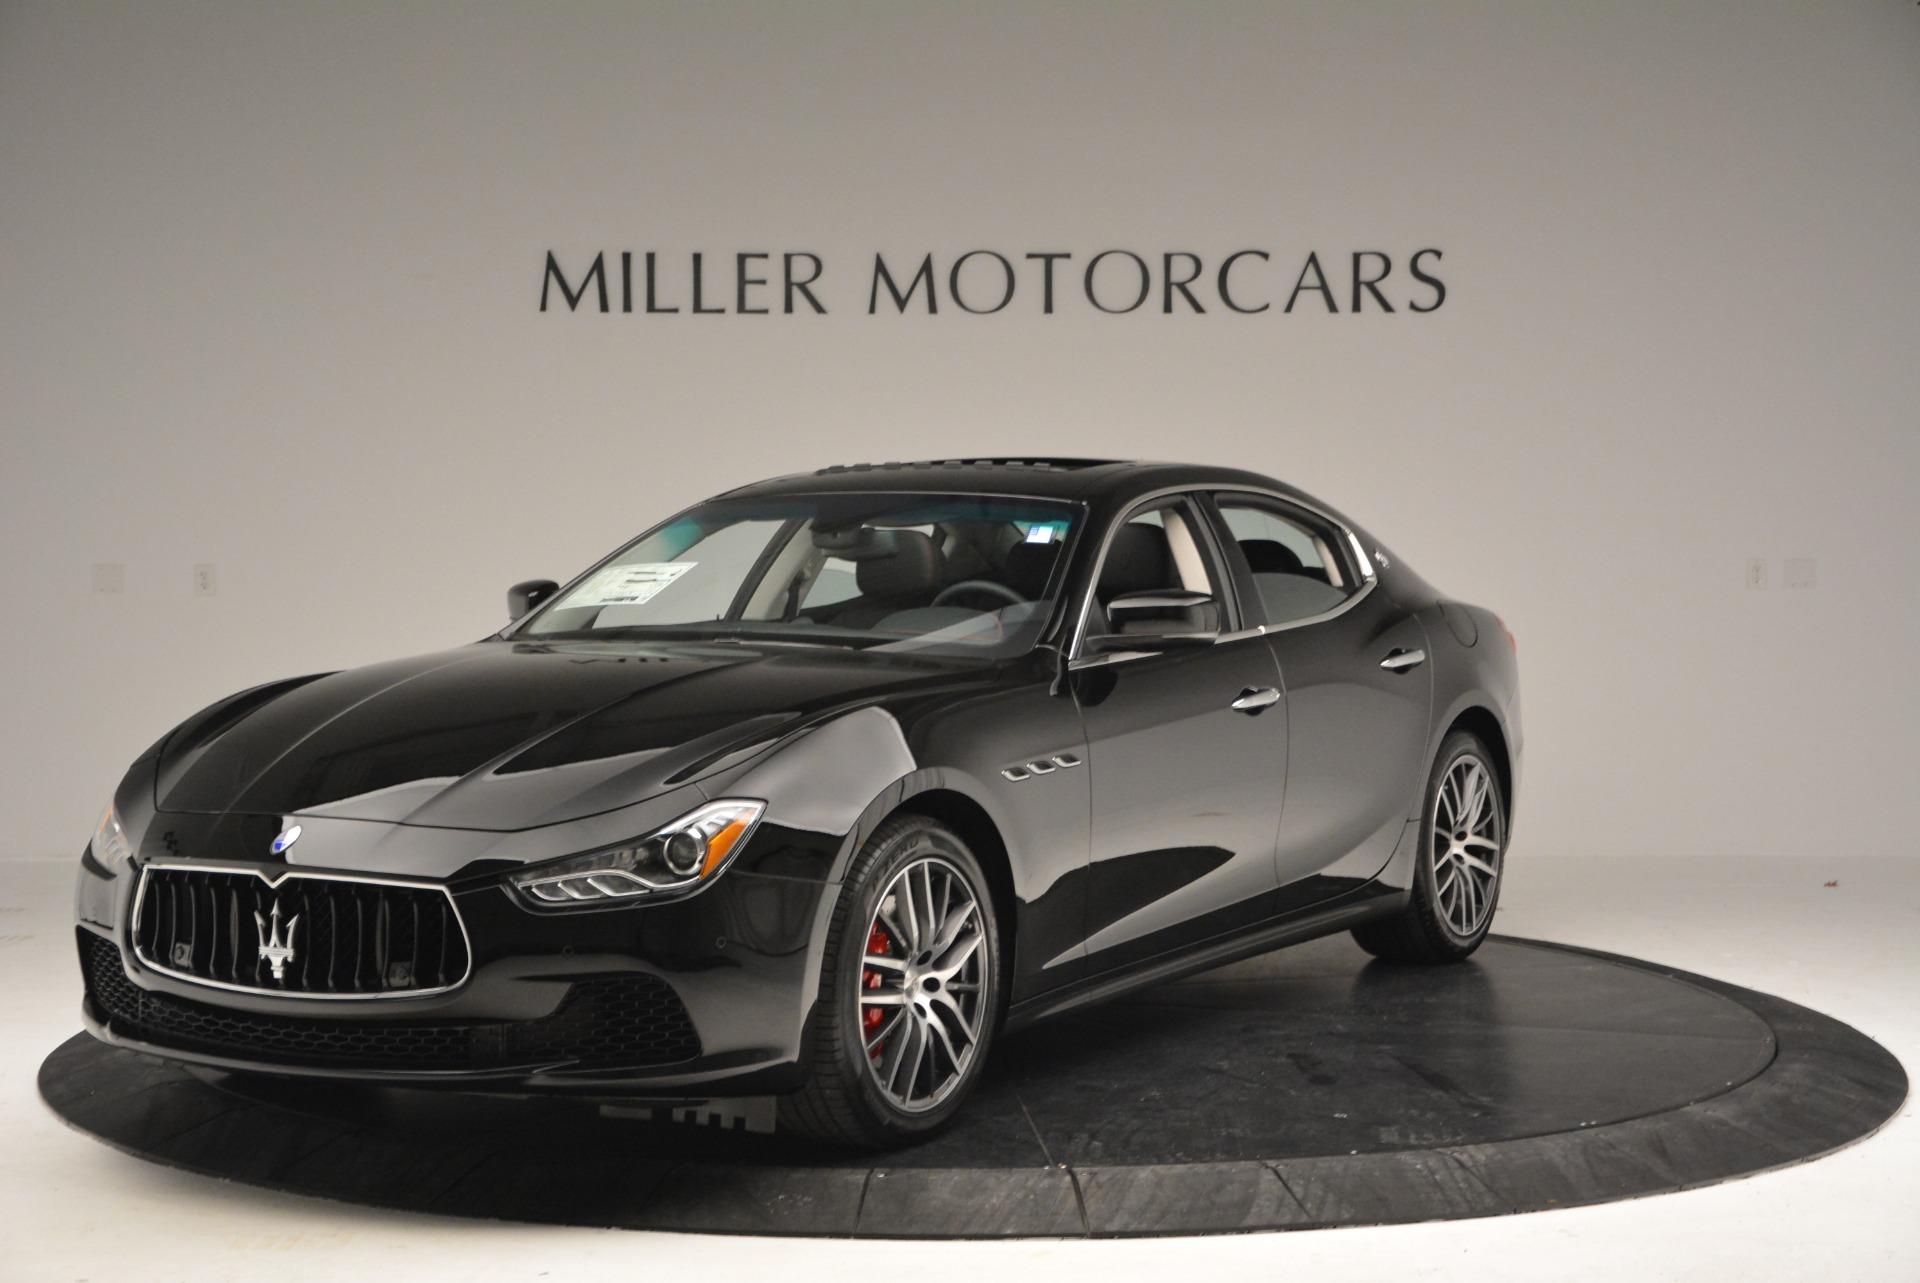 New 2017 Maserati Ghibli S Q4 For Sale In Greenwich, CT 934_main